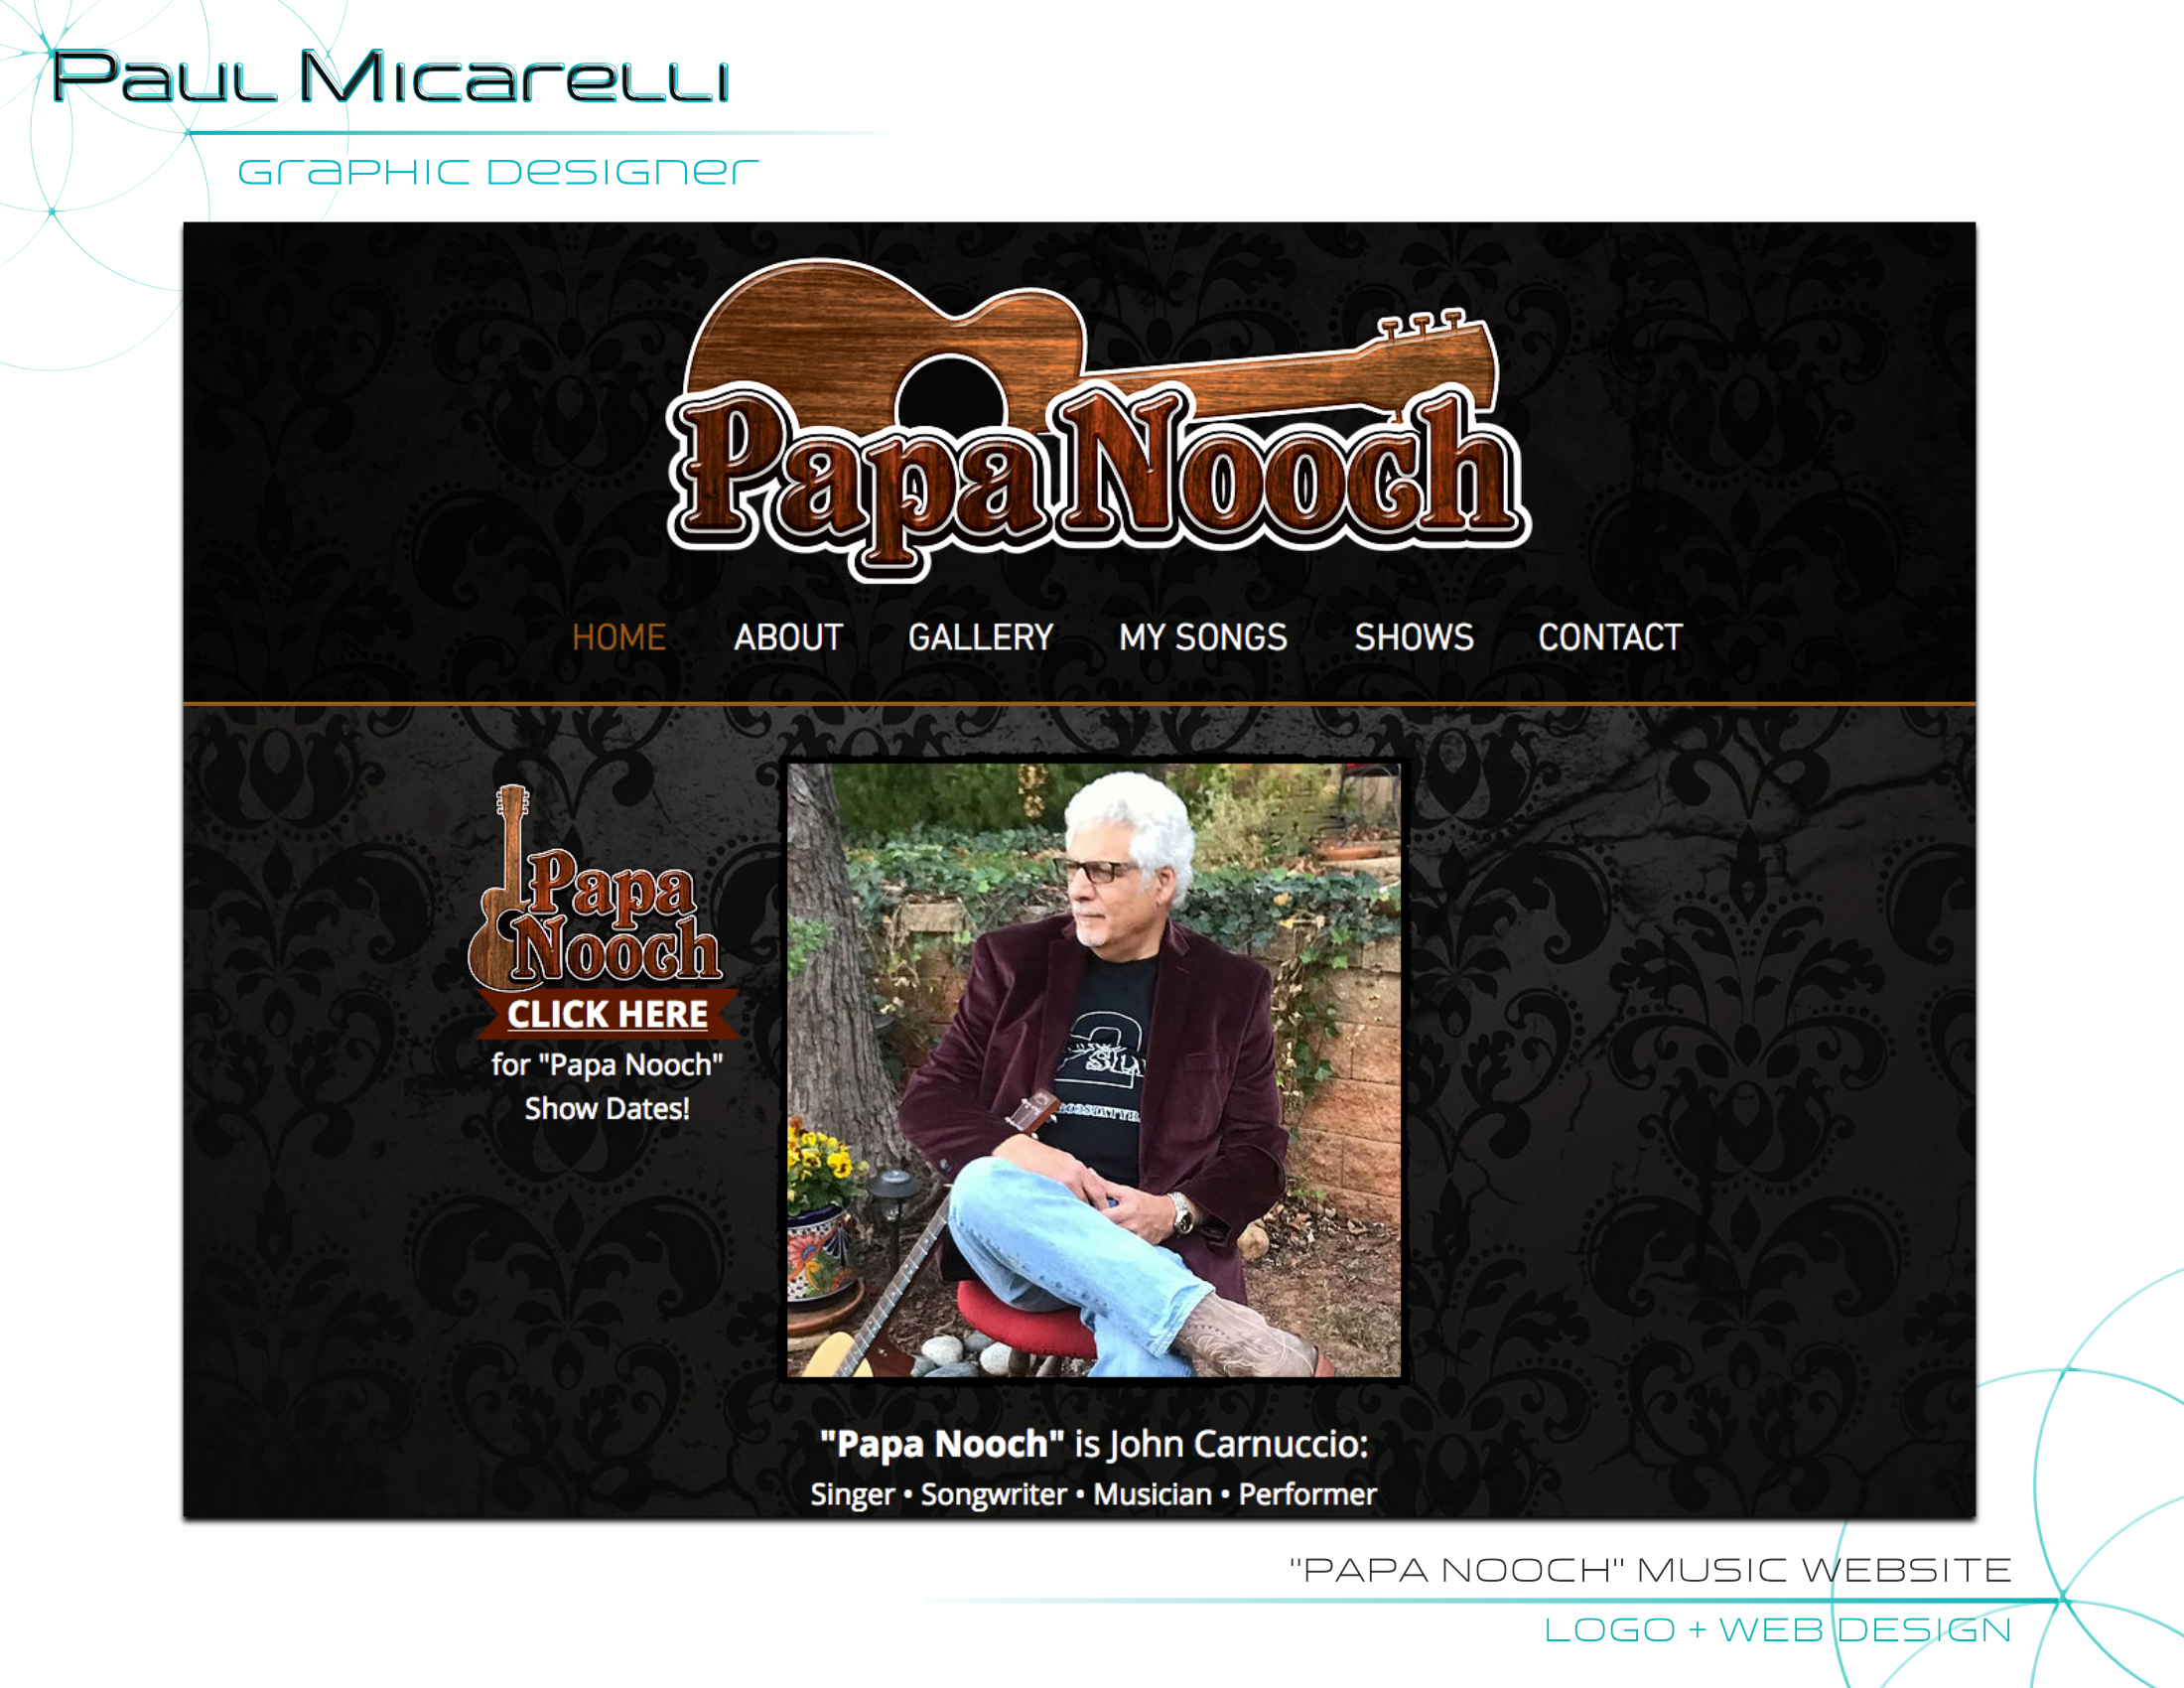 Paul-Micarelli-Papa Nooch Website